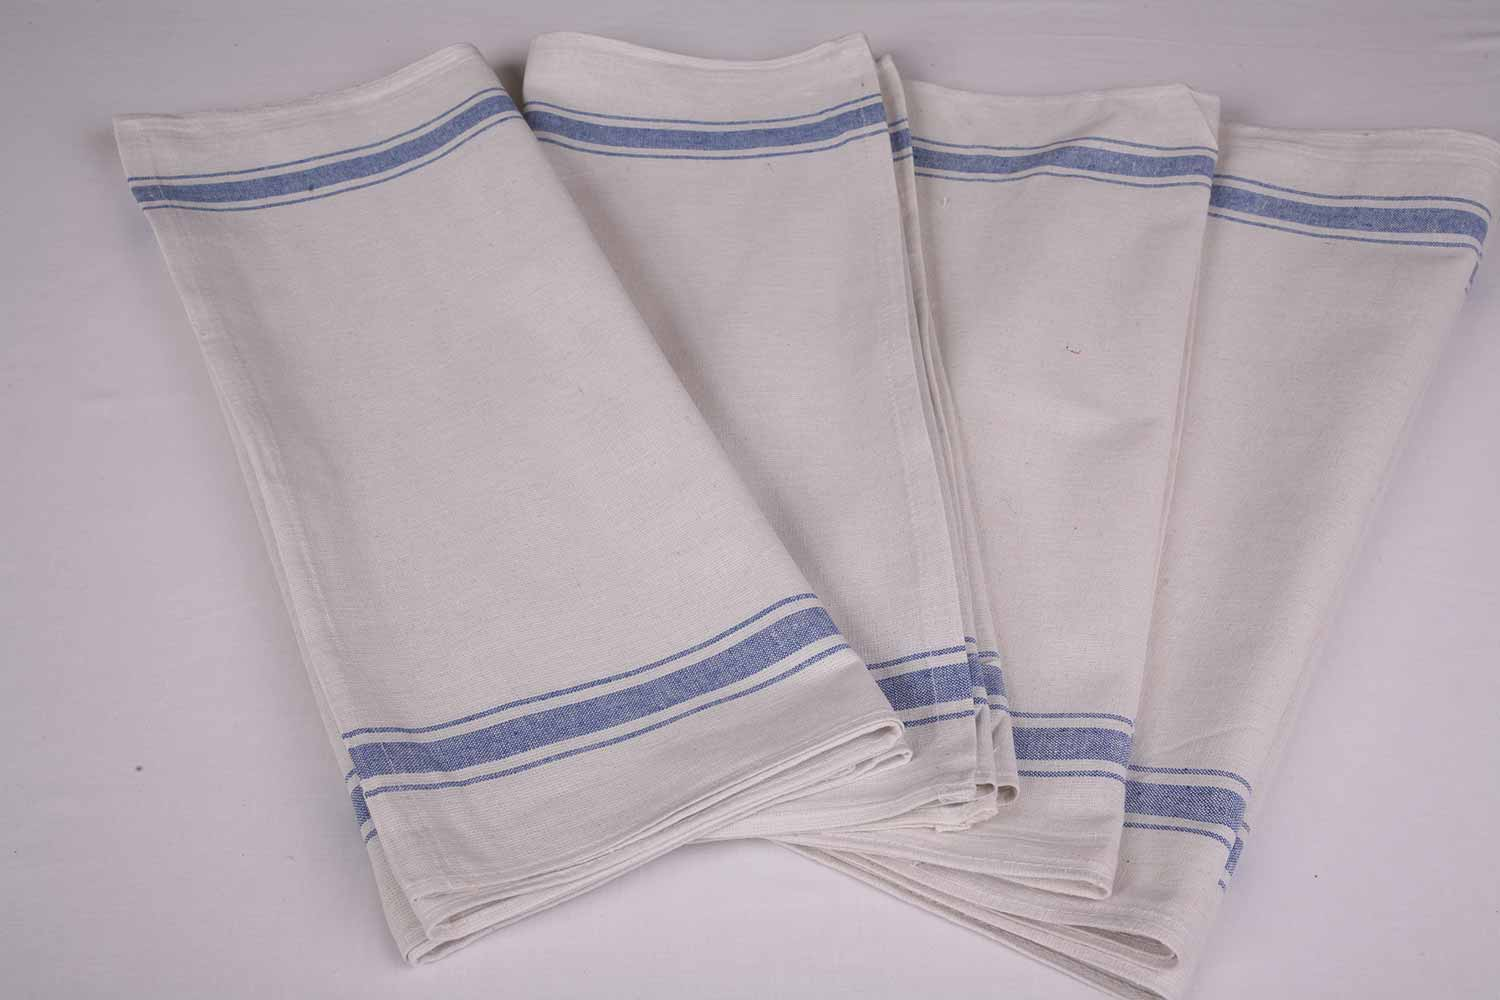 An image of three blue and white tea towels, available for purchase from Queens Drive Laundry.